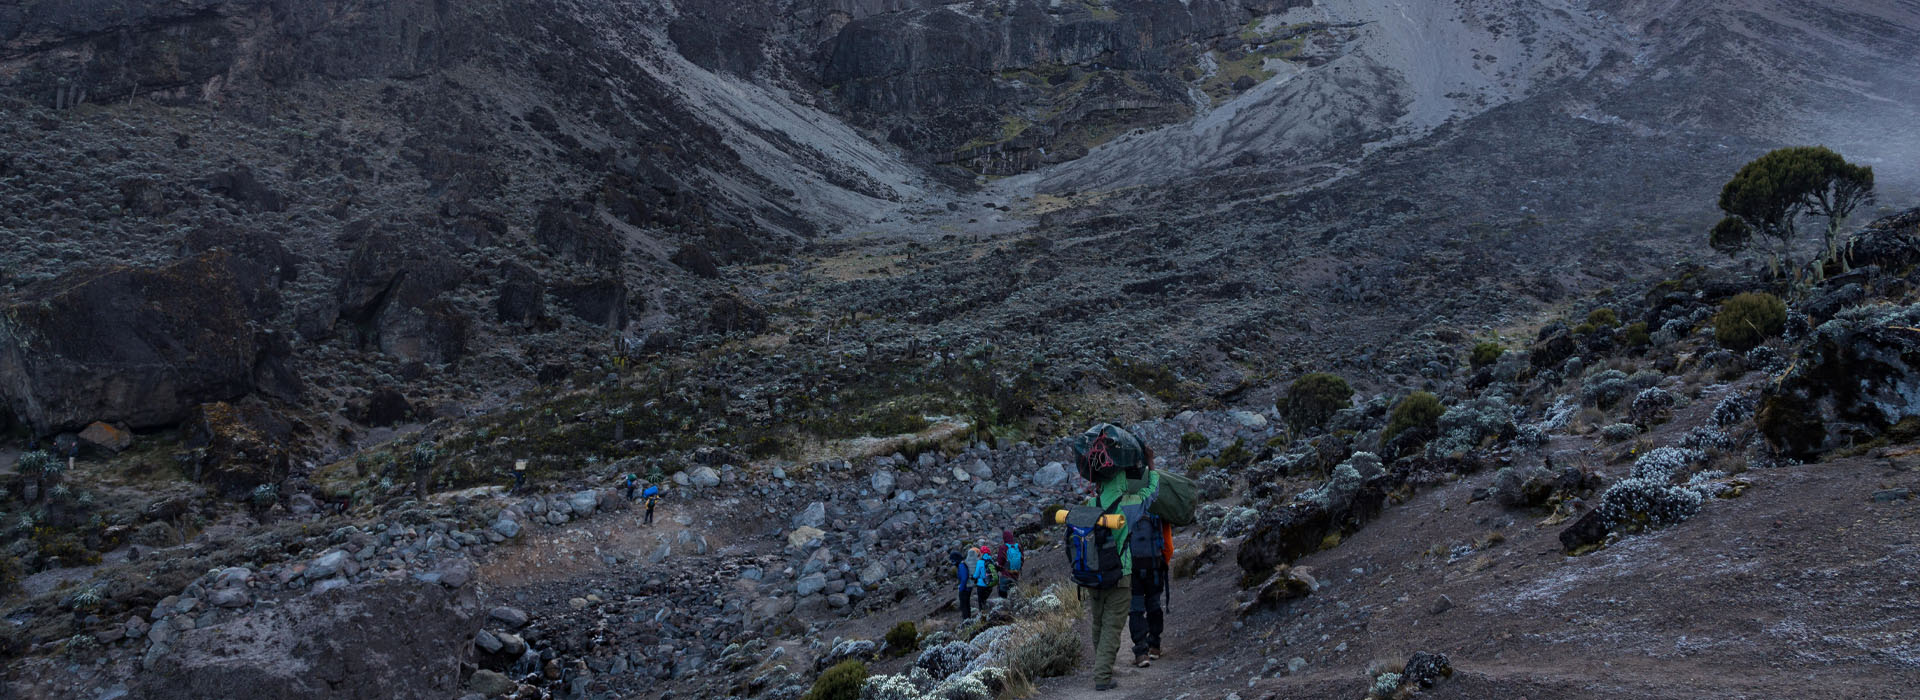 Landscape at Mt. Kilimanjaro - The Roof Of Africa - African Adventure Specialists